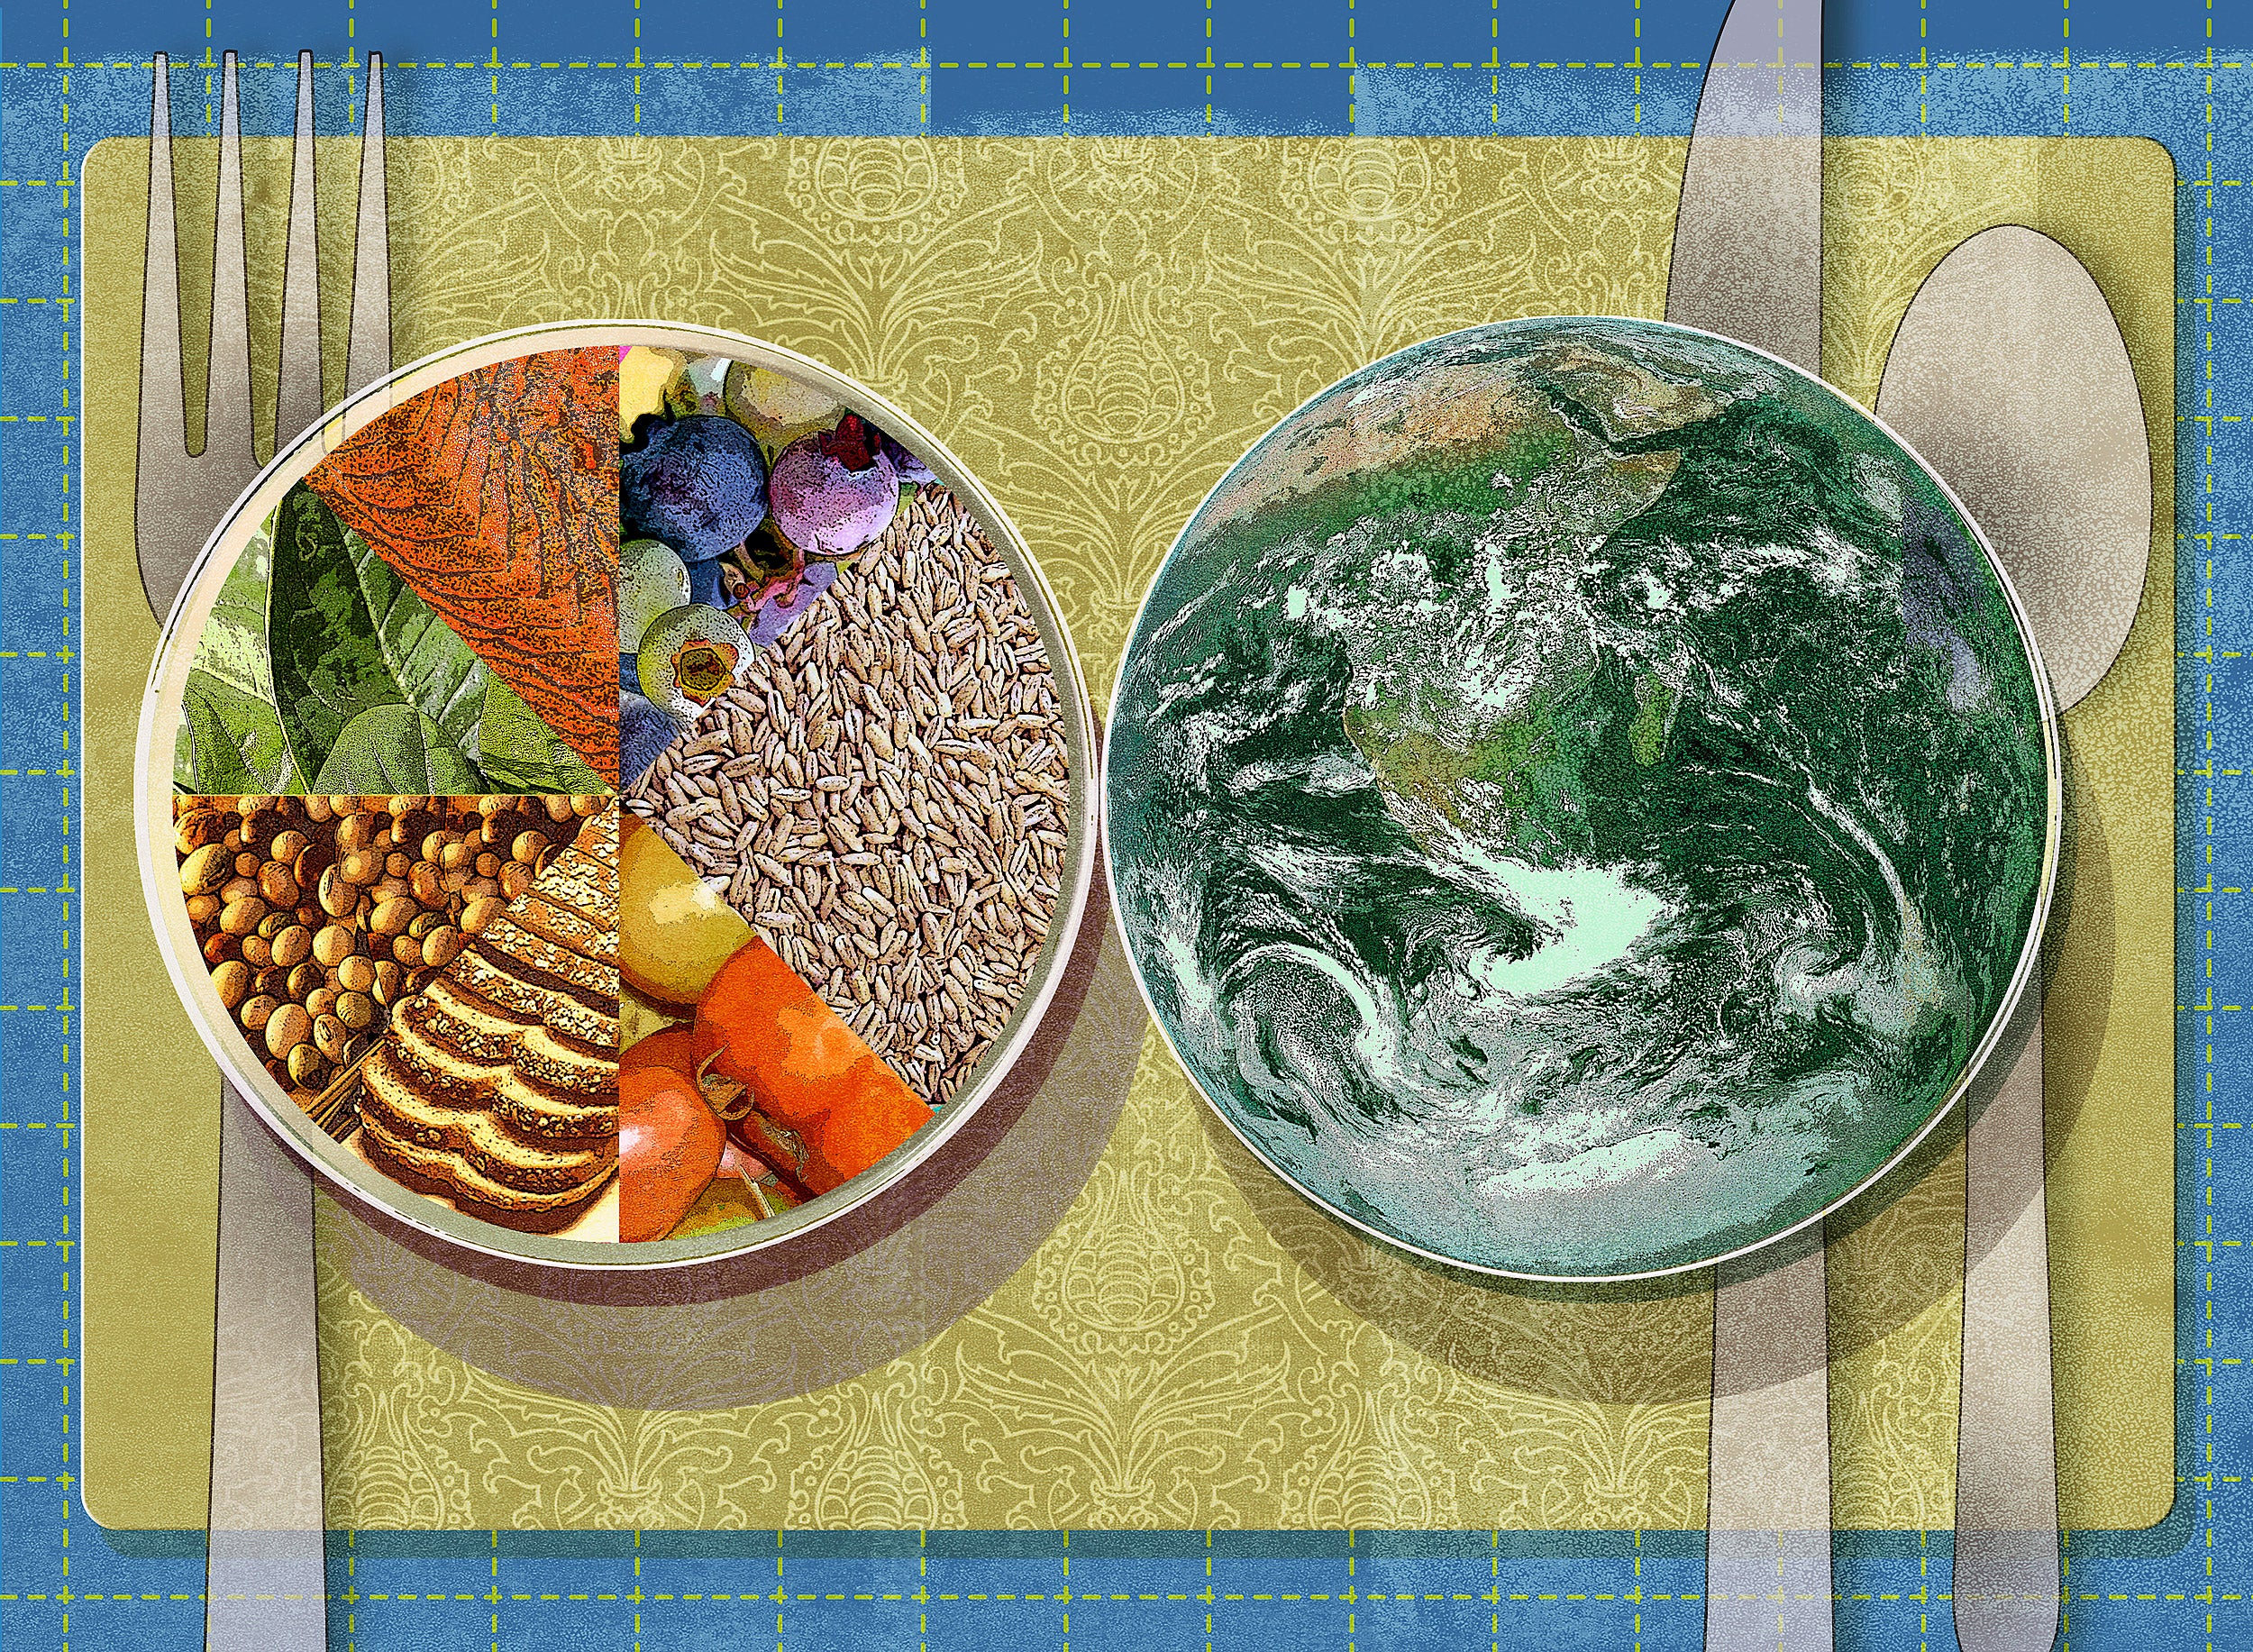 Illustration of two plates, one filled with components of a healthy diet and one filled with planet.